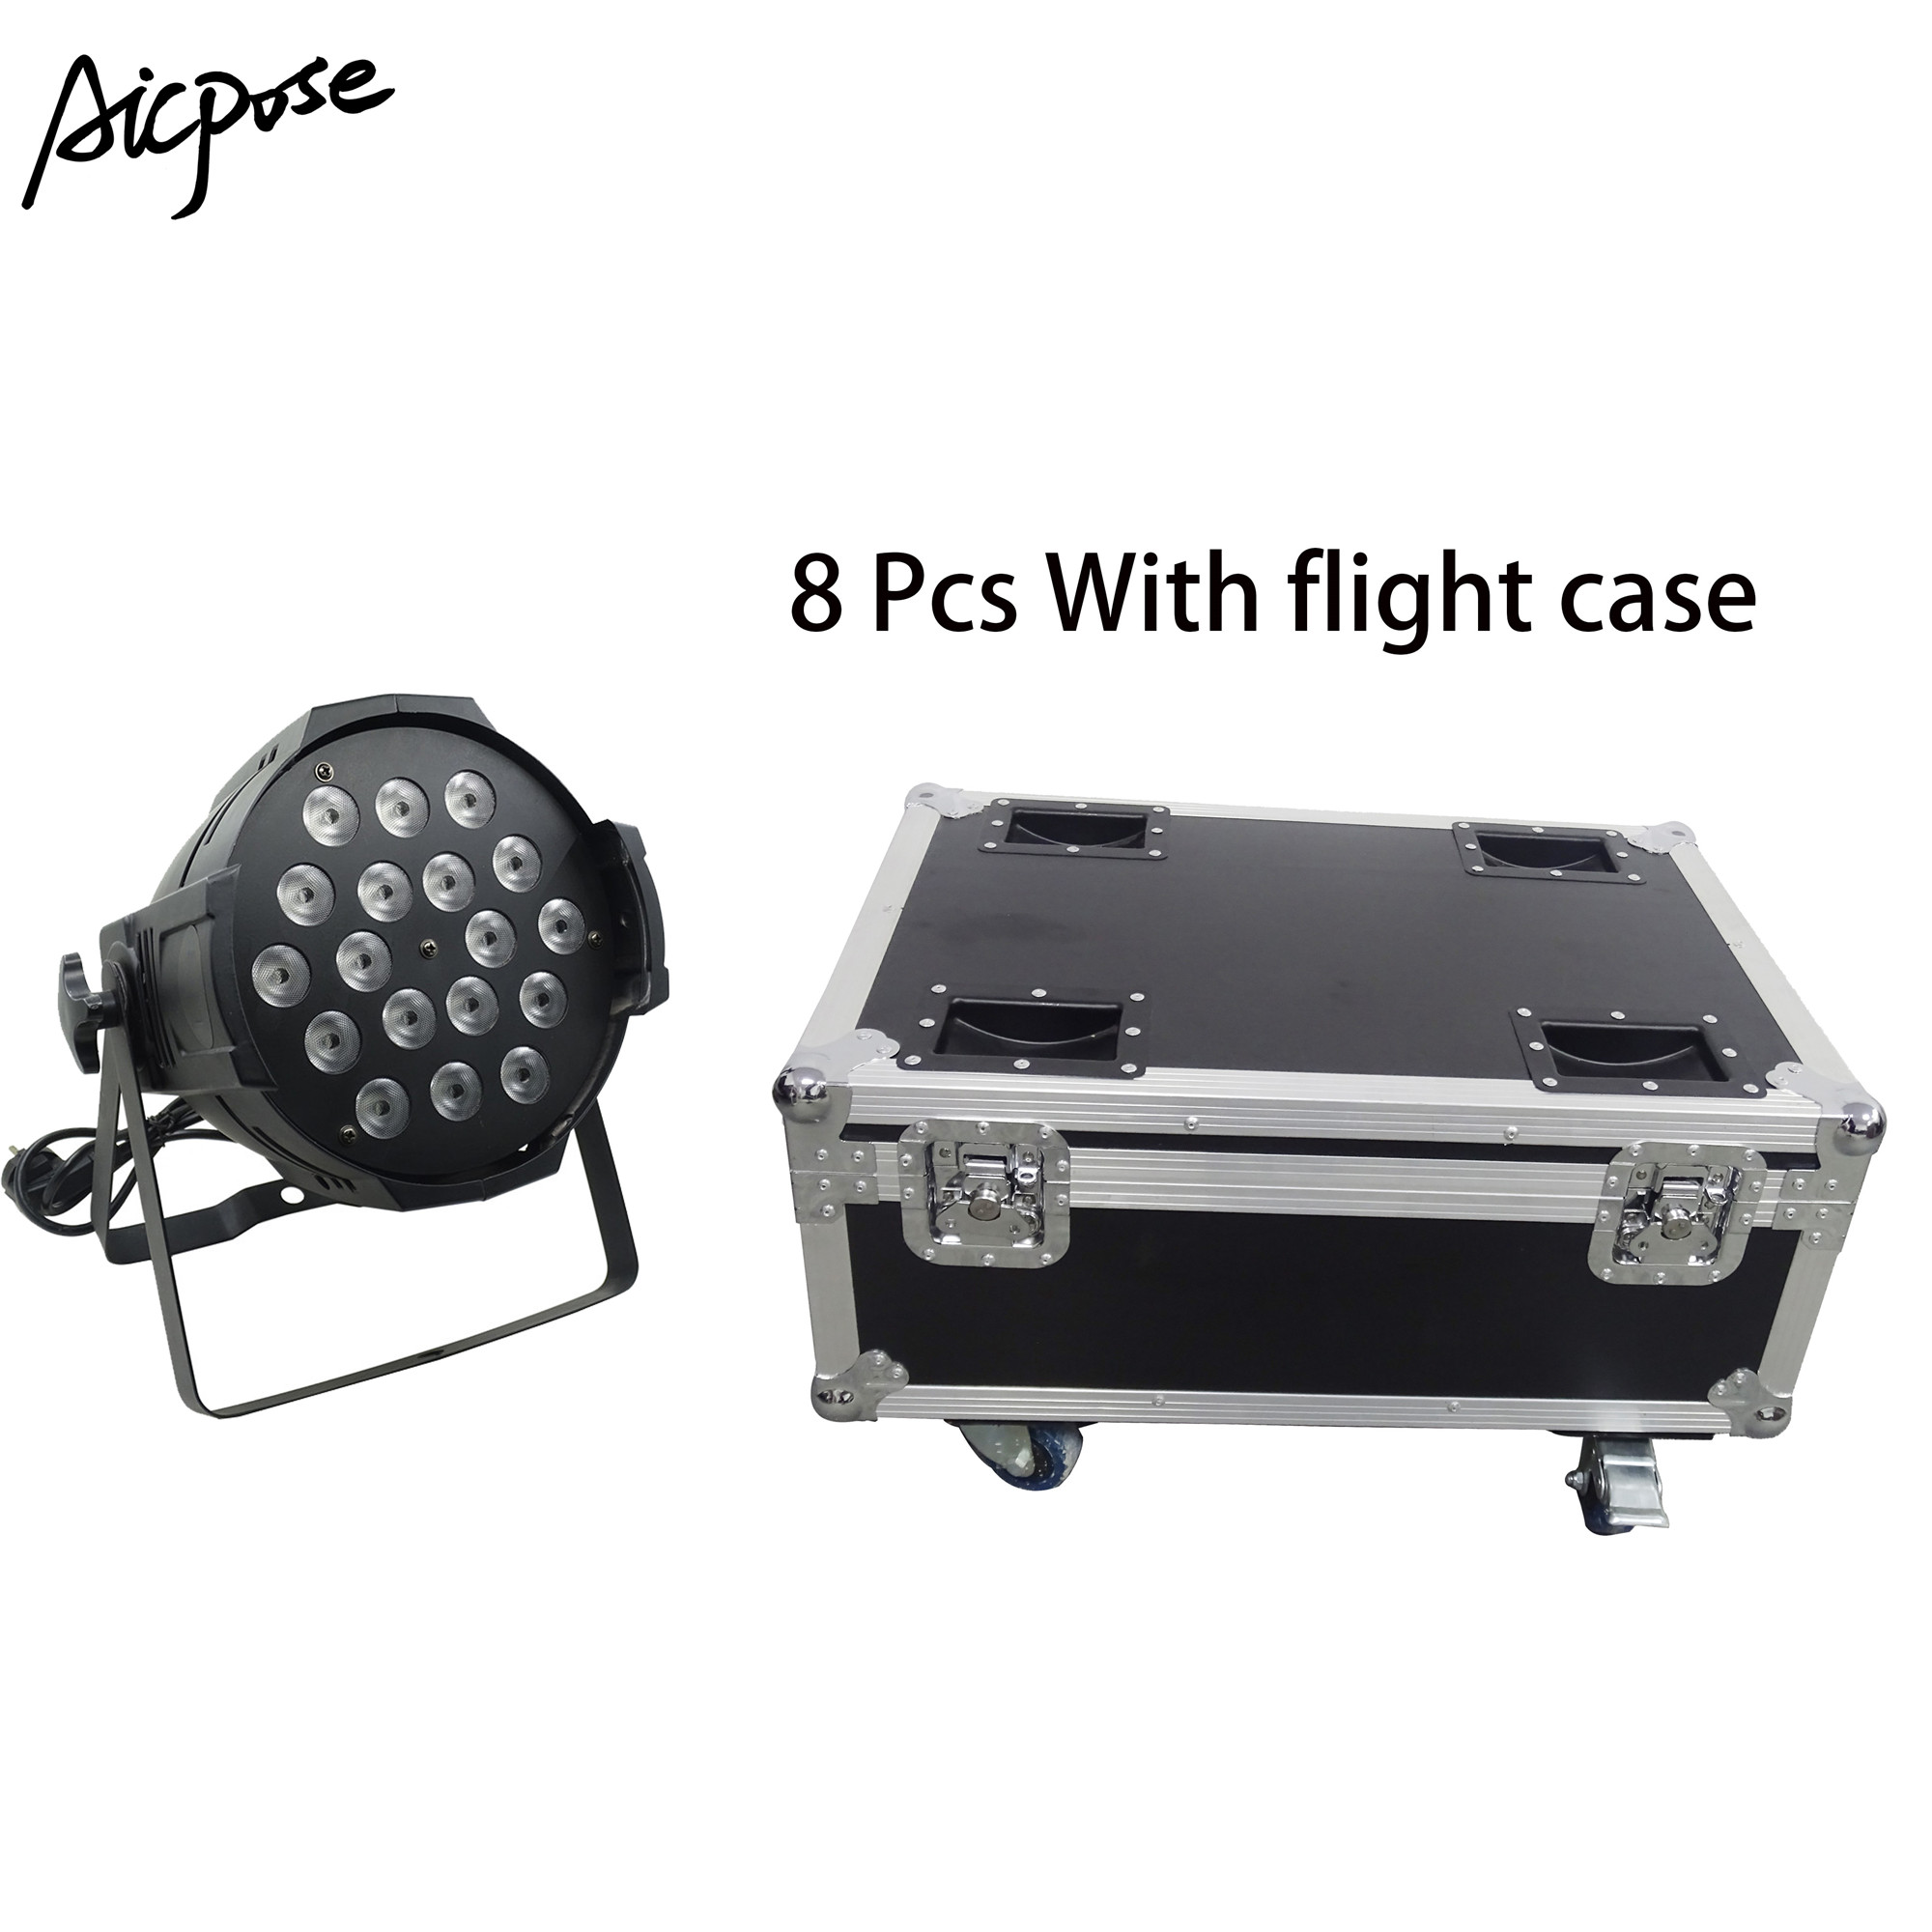 8pcs 18*12w Power In And Out  LED Par Lights 18x12W RGBW 4in1 Par 64 Led Spotlight Dj Projector Stage Light With Flight Case